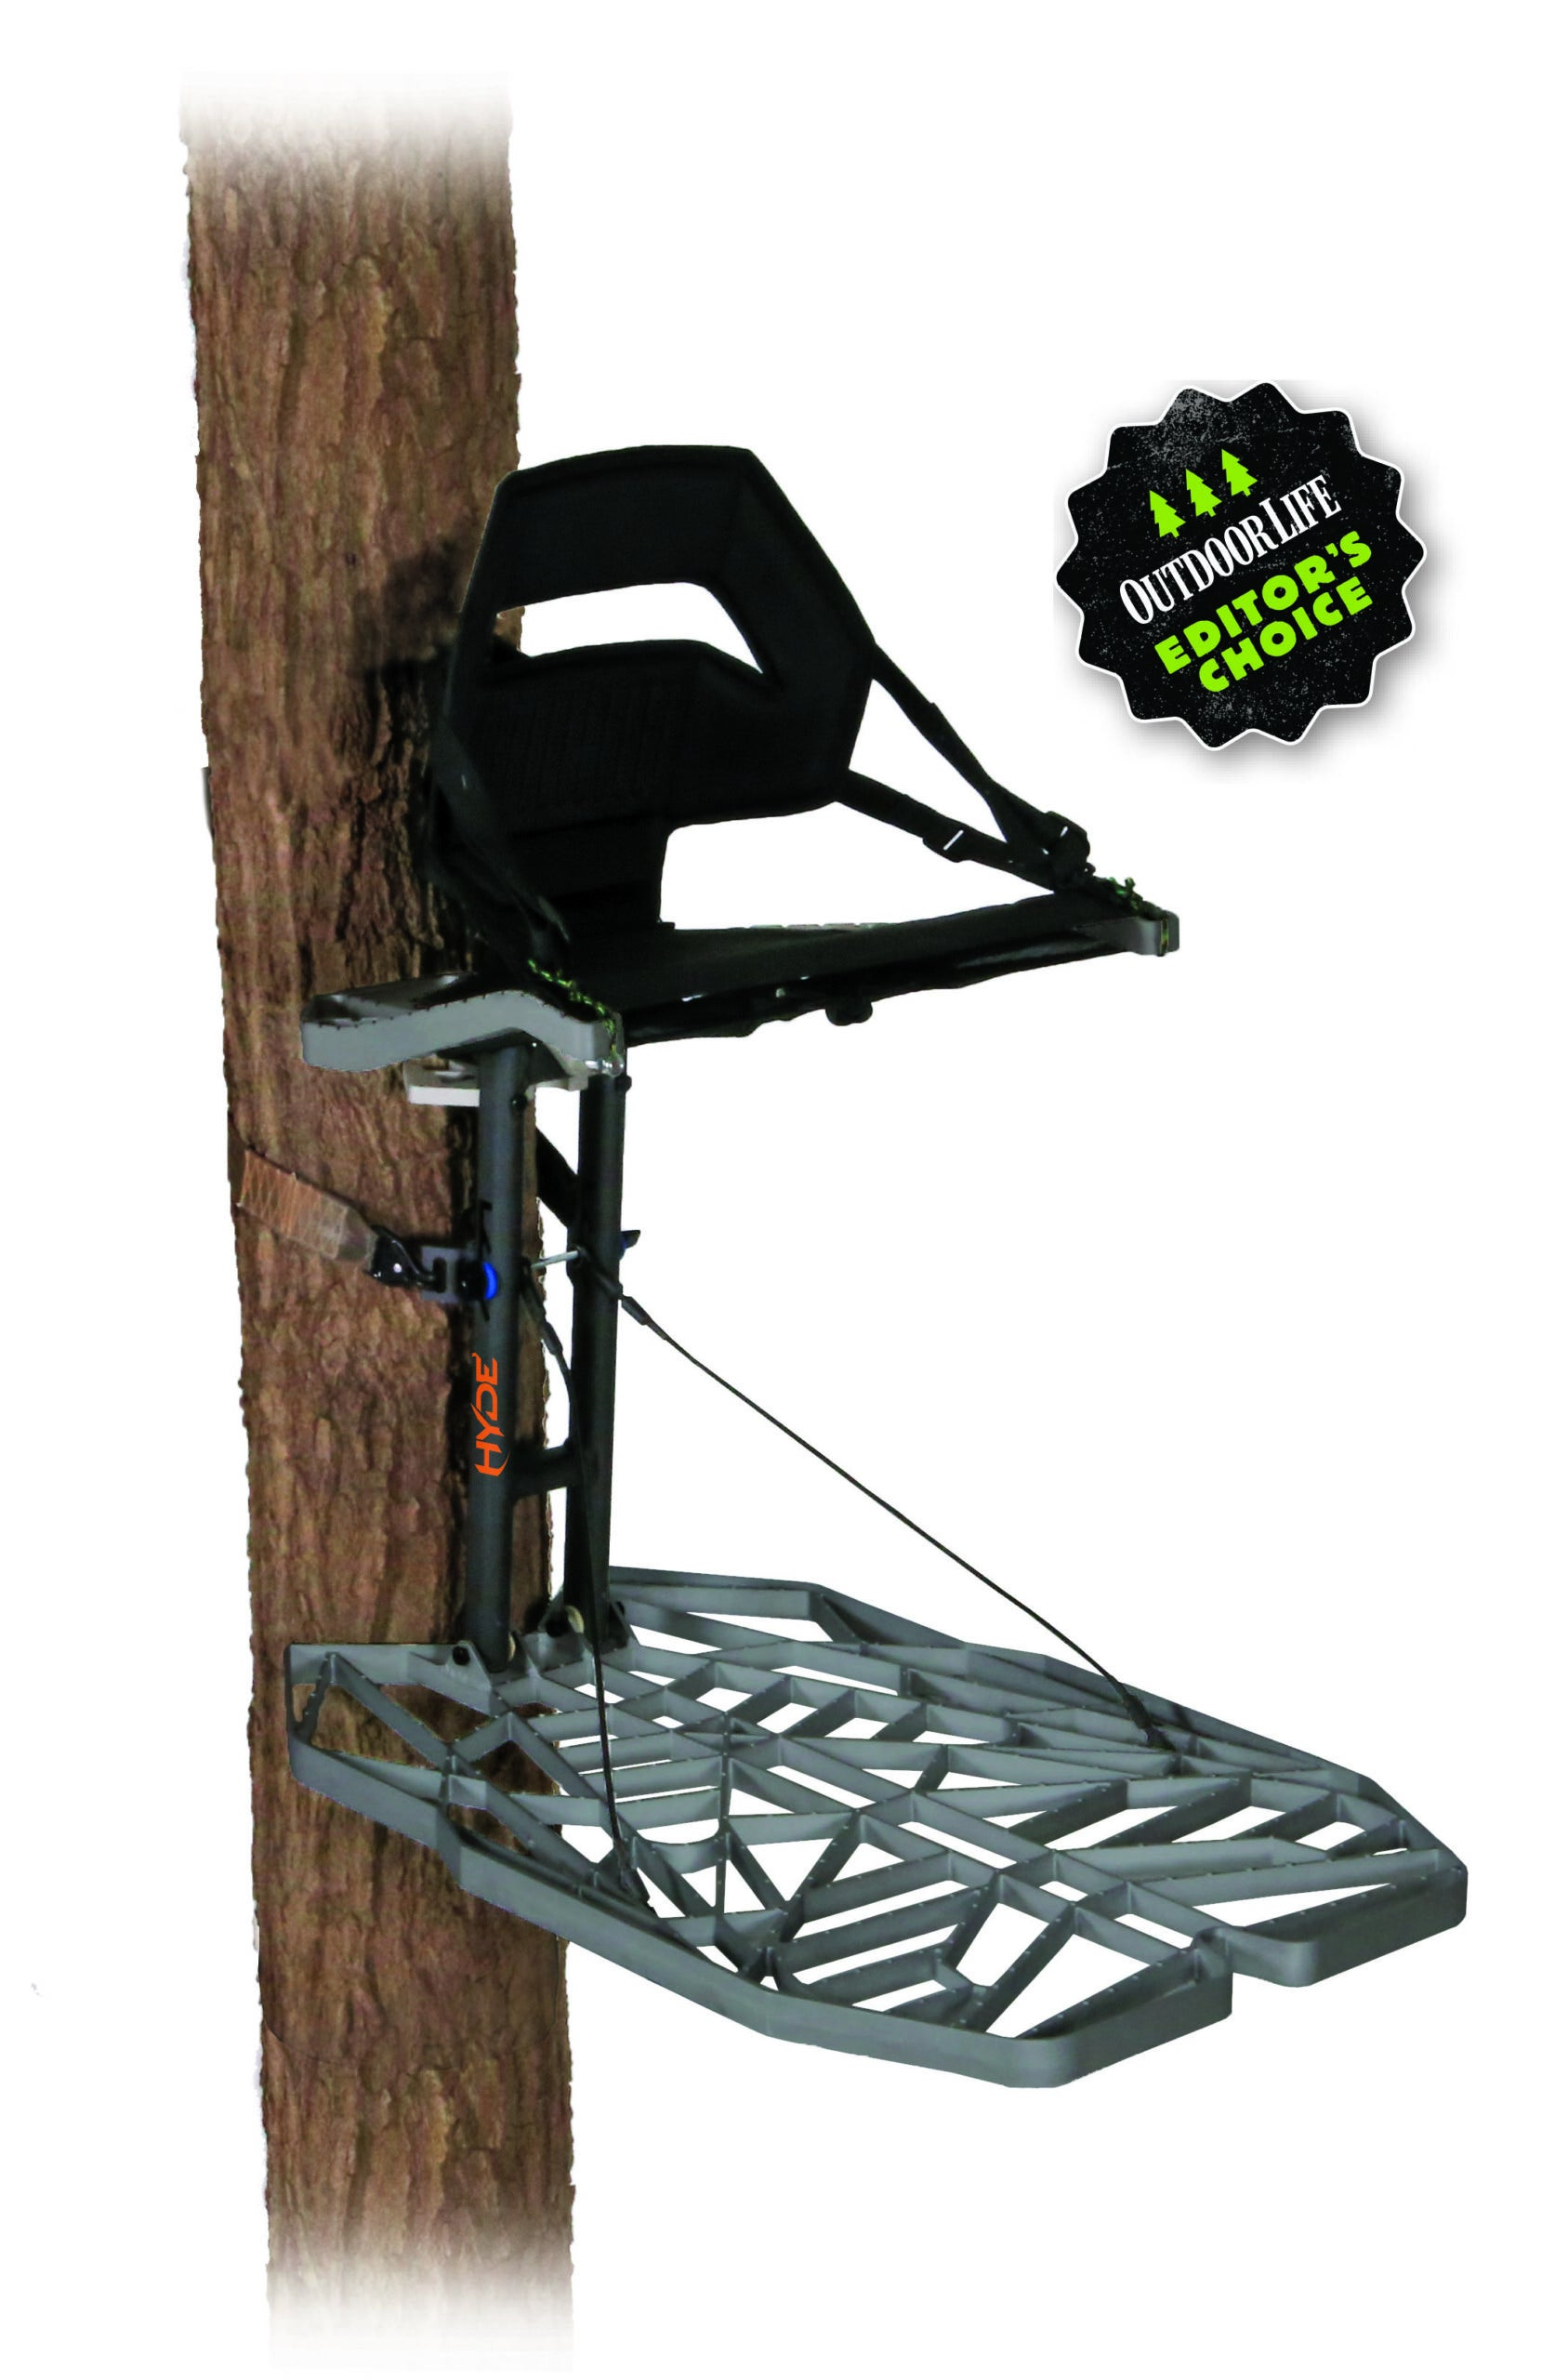 Treestand Review: Best New Hang-On Stands